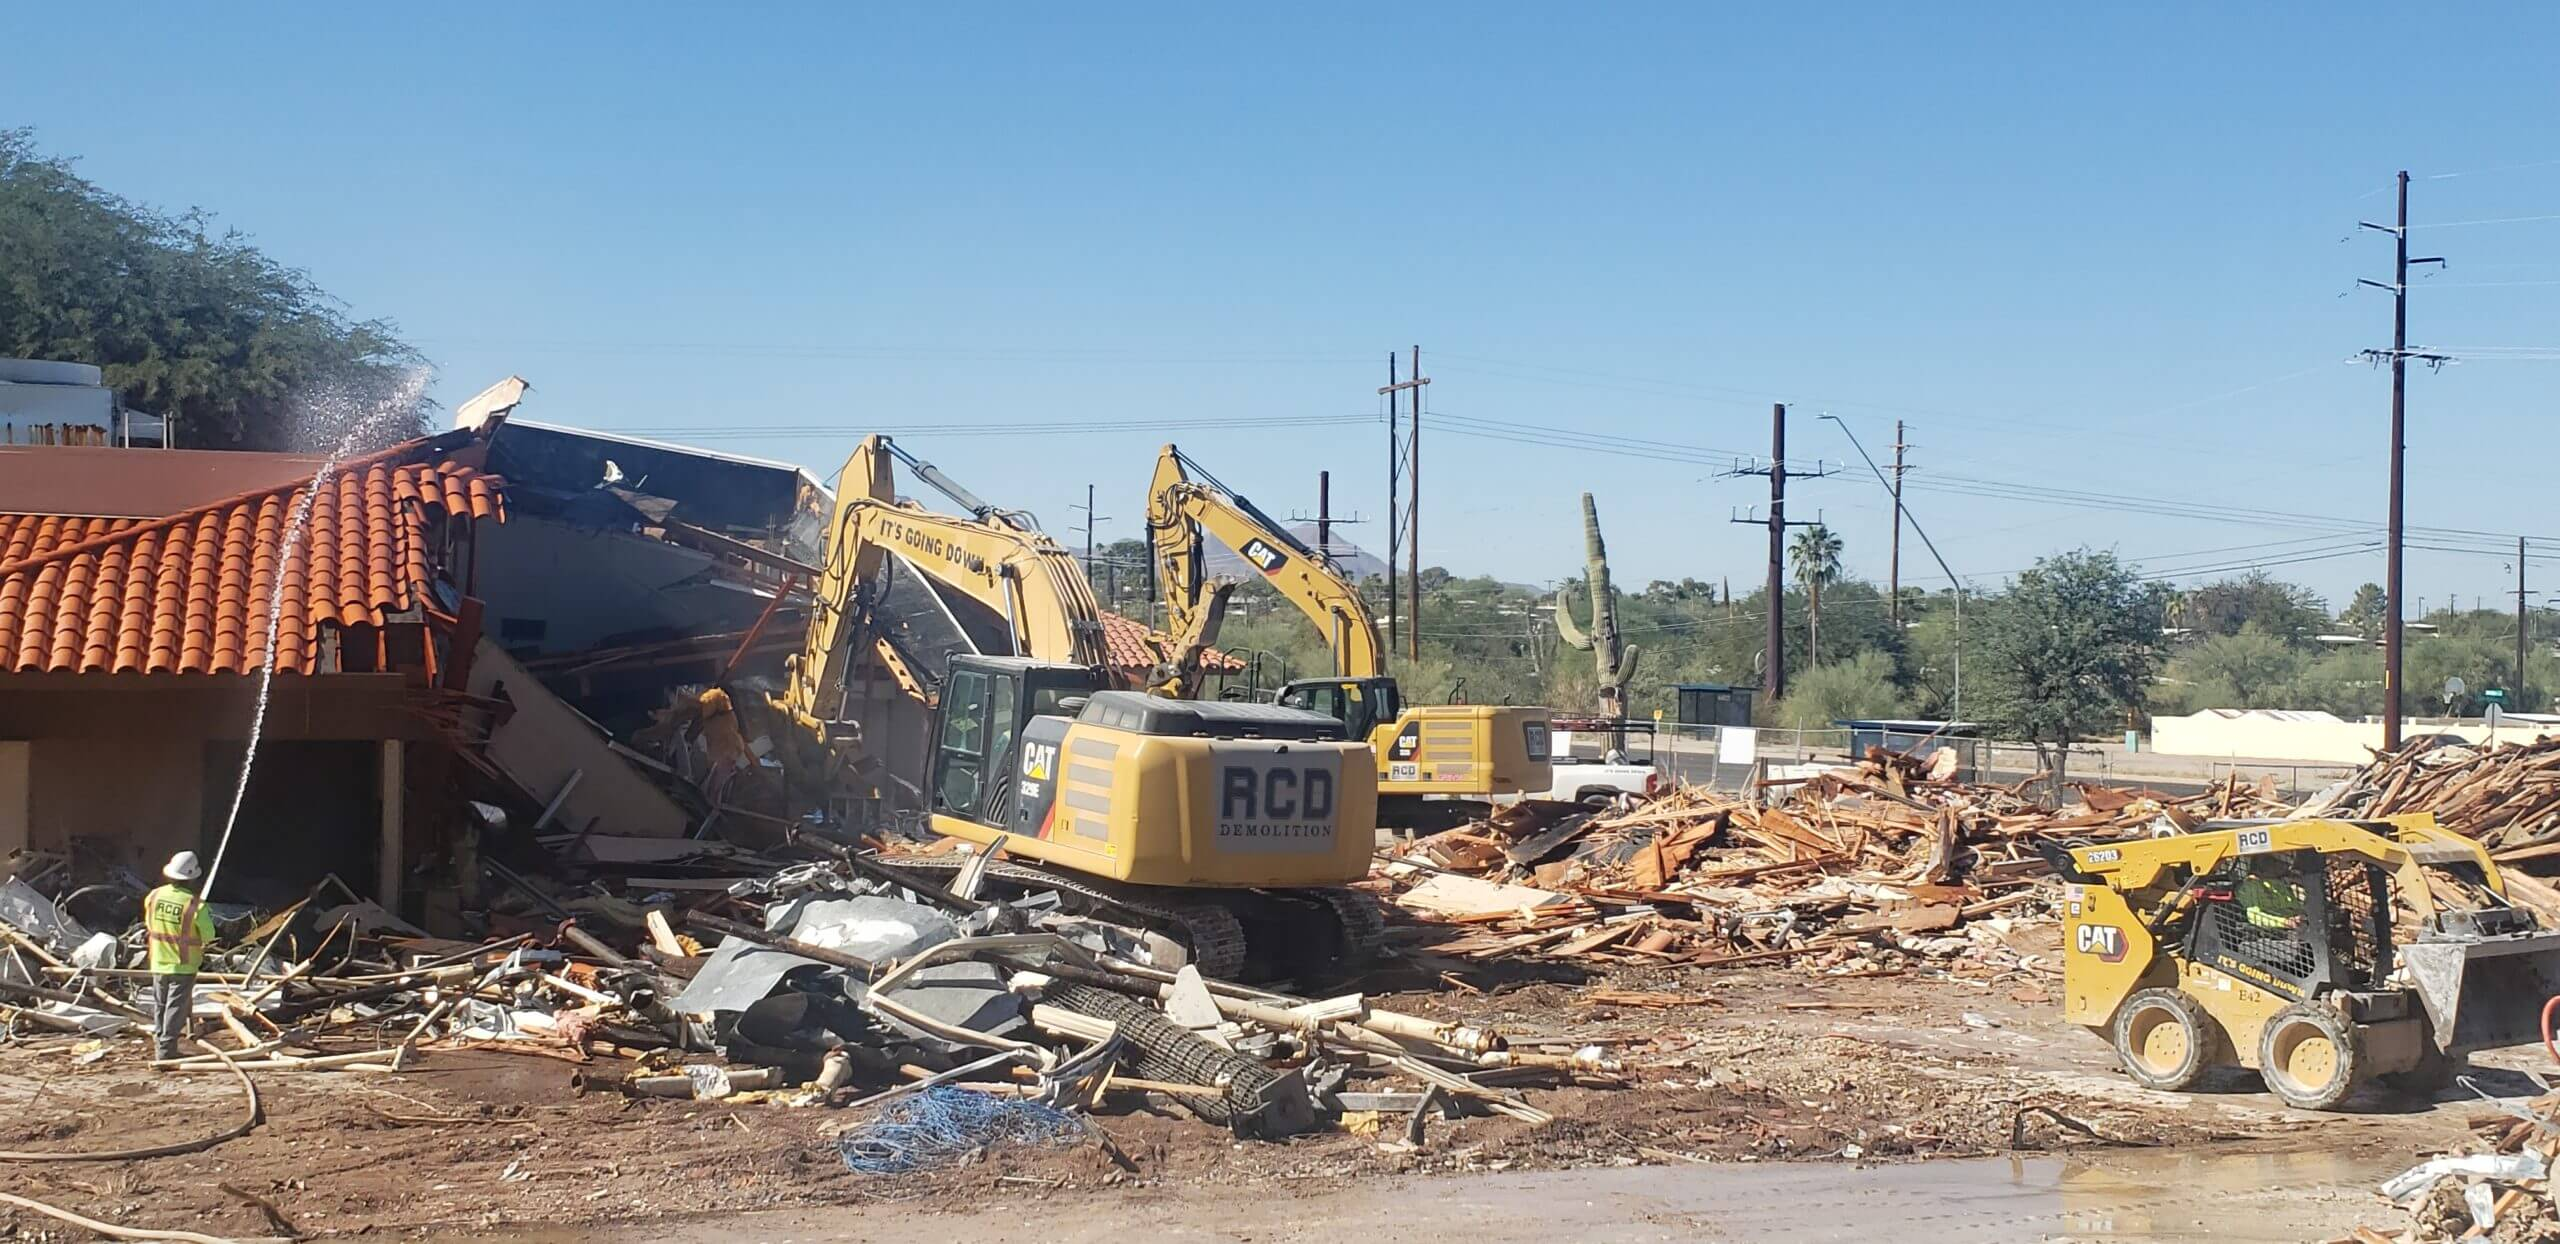 Expert Commercial Demolition Services